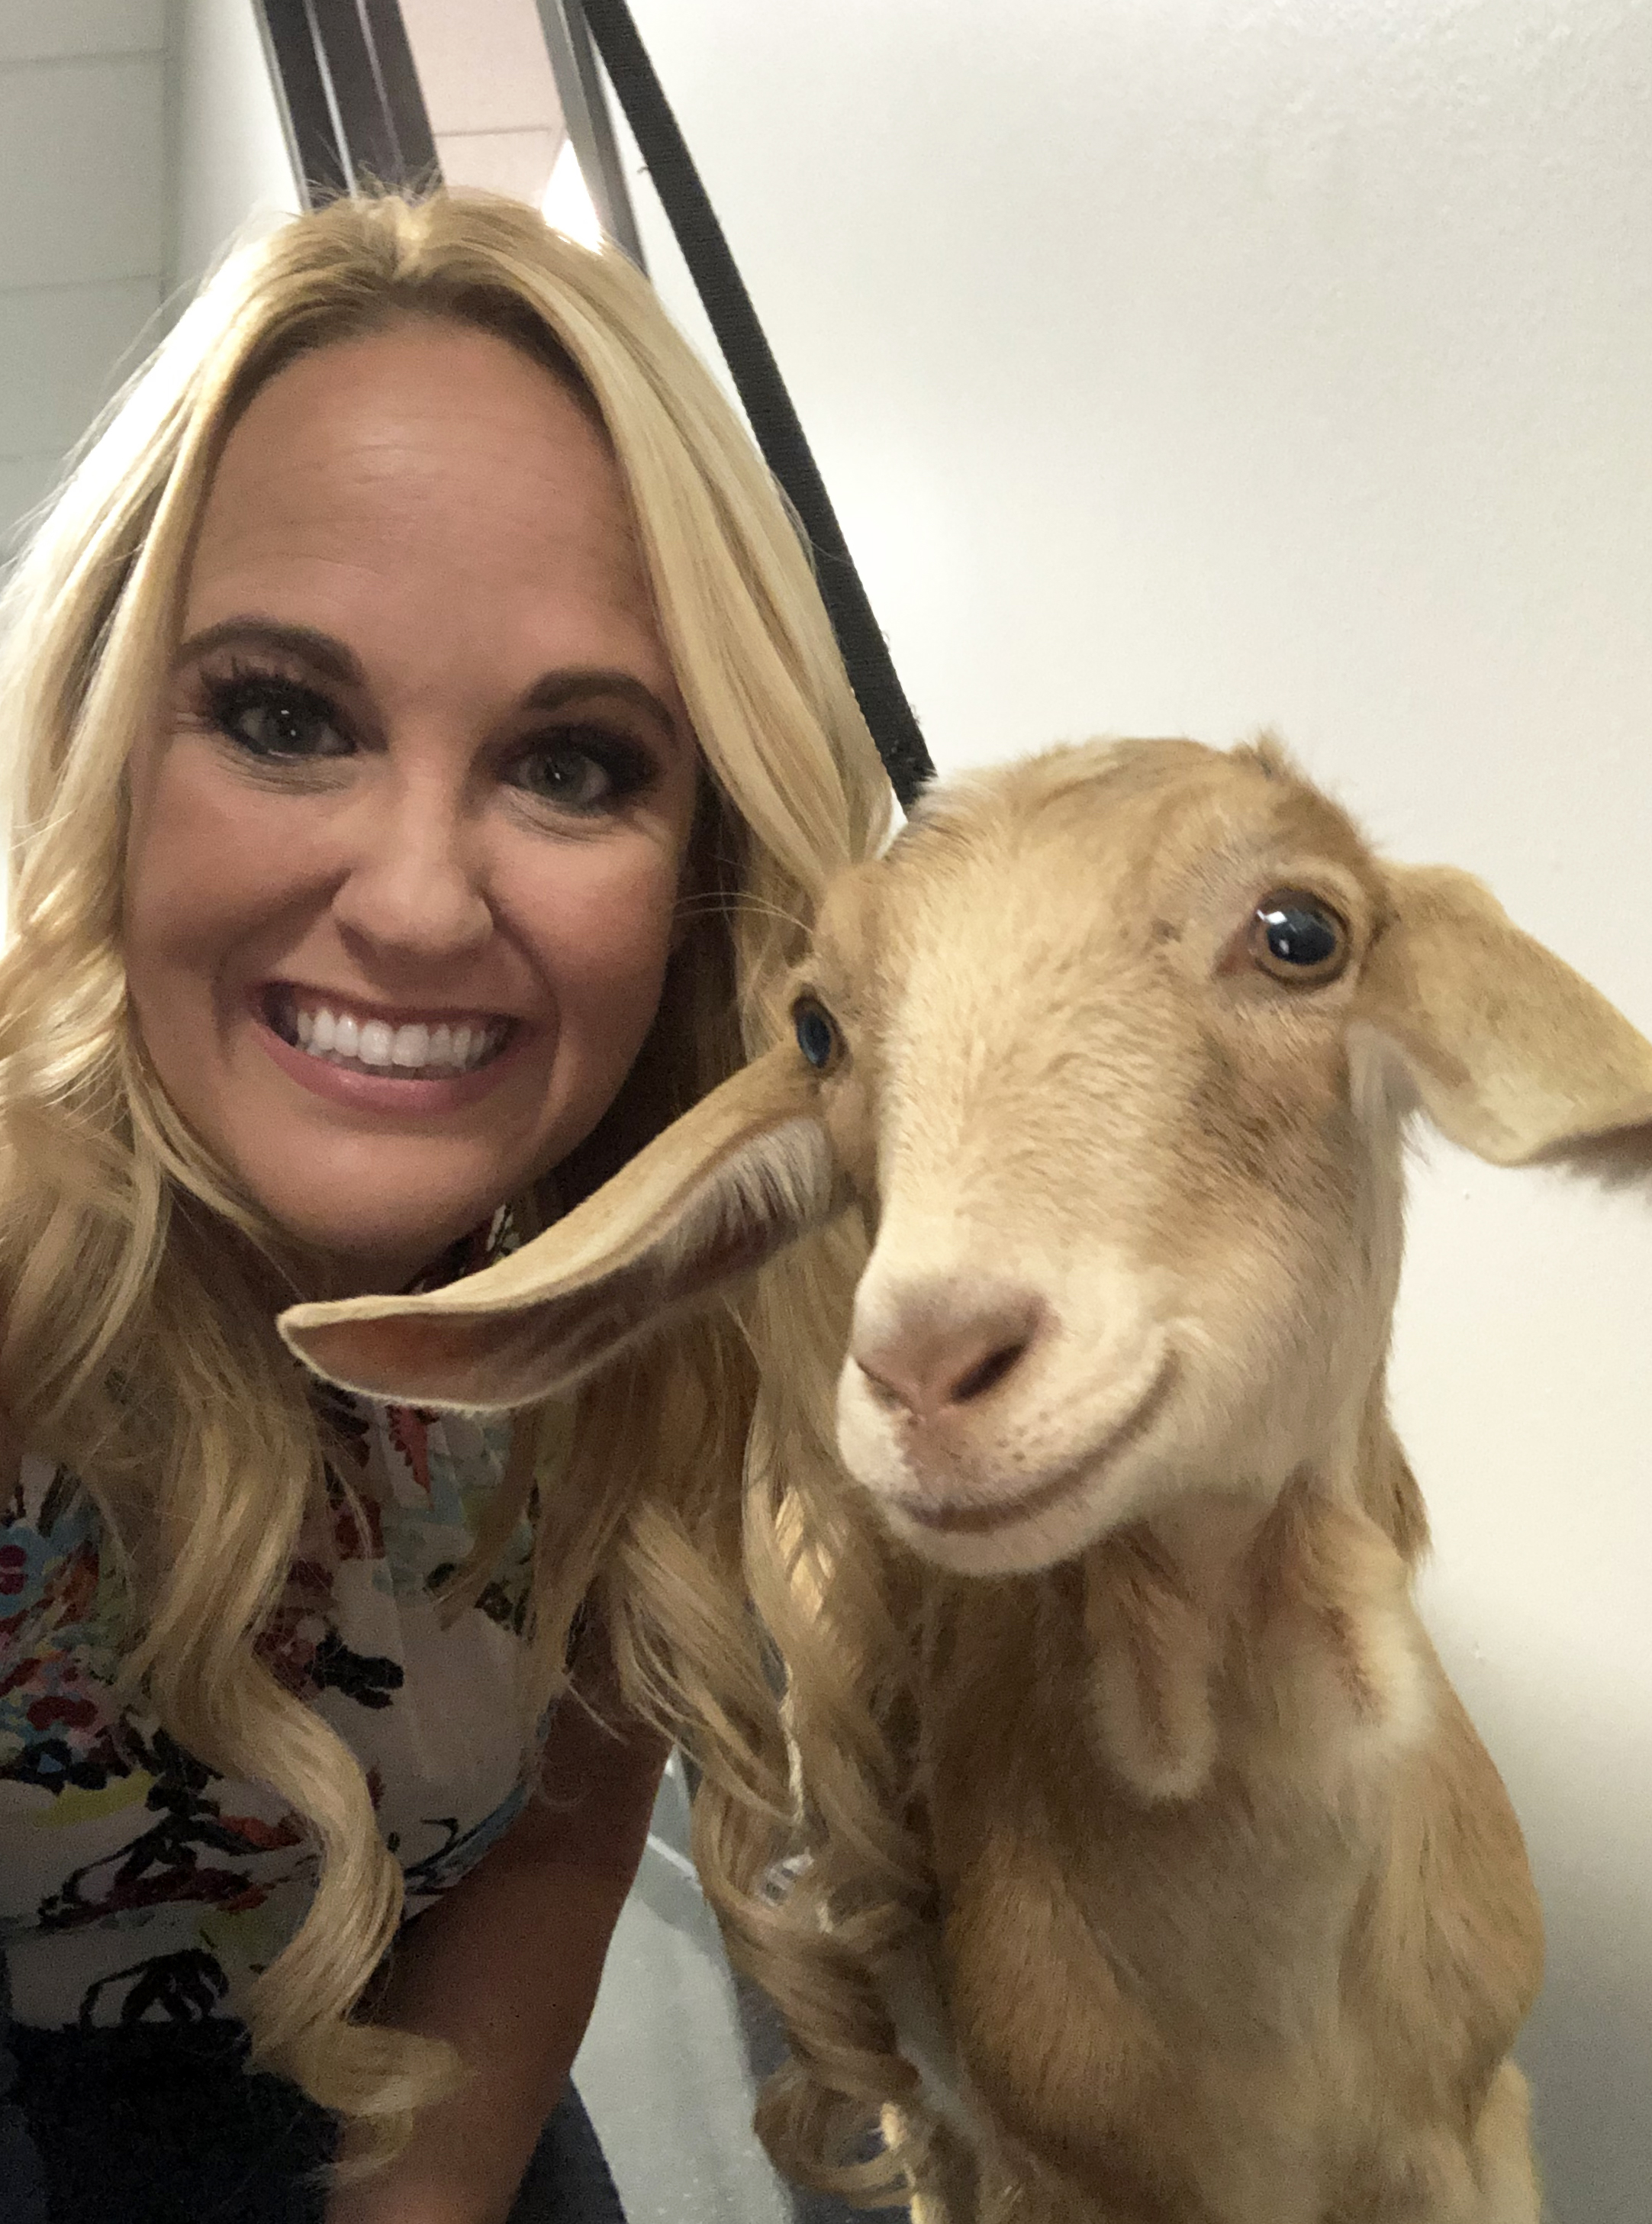 Allie Wagner of KUSI hanging with Millie backstage